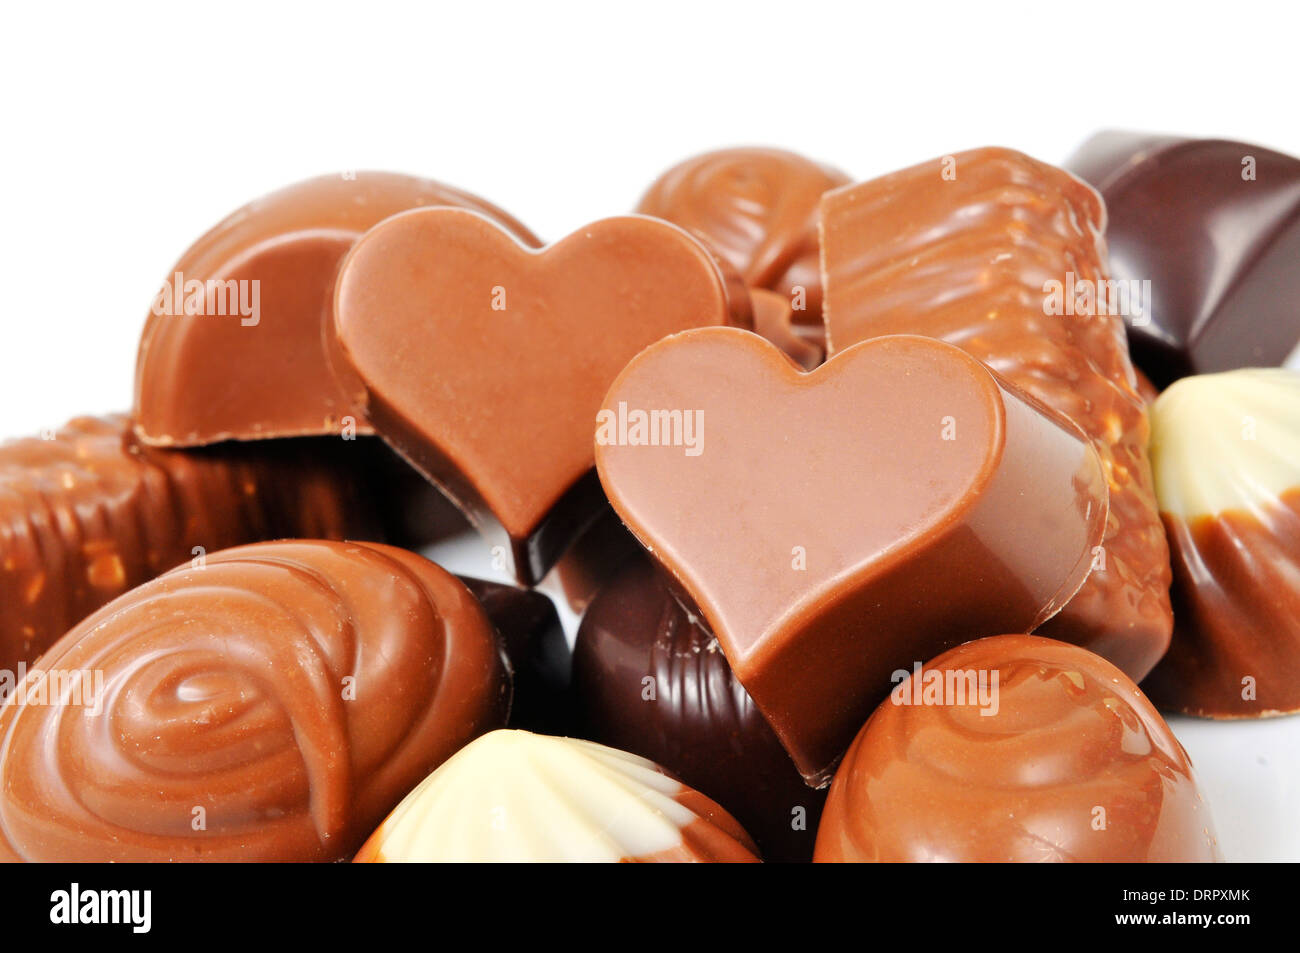 a pile of different chocolate bonbons, some of them heart-shaped, on a white background - Stock Image